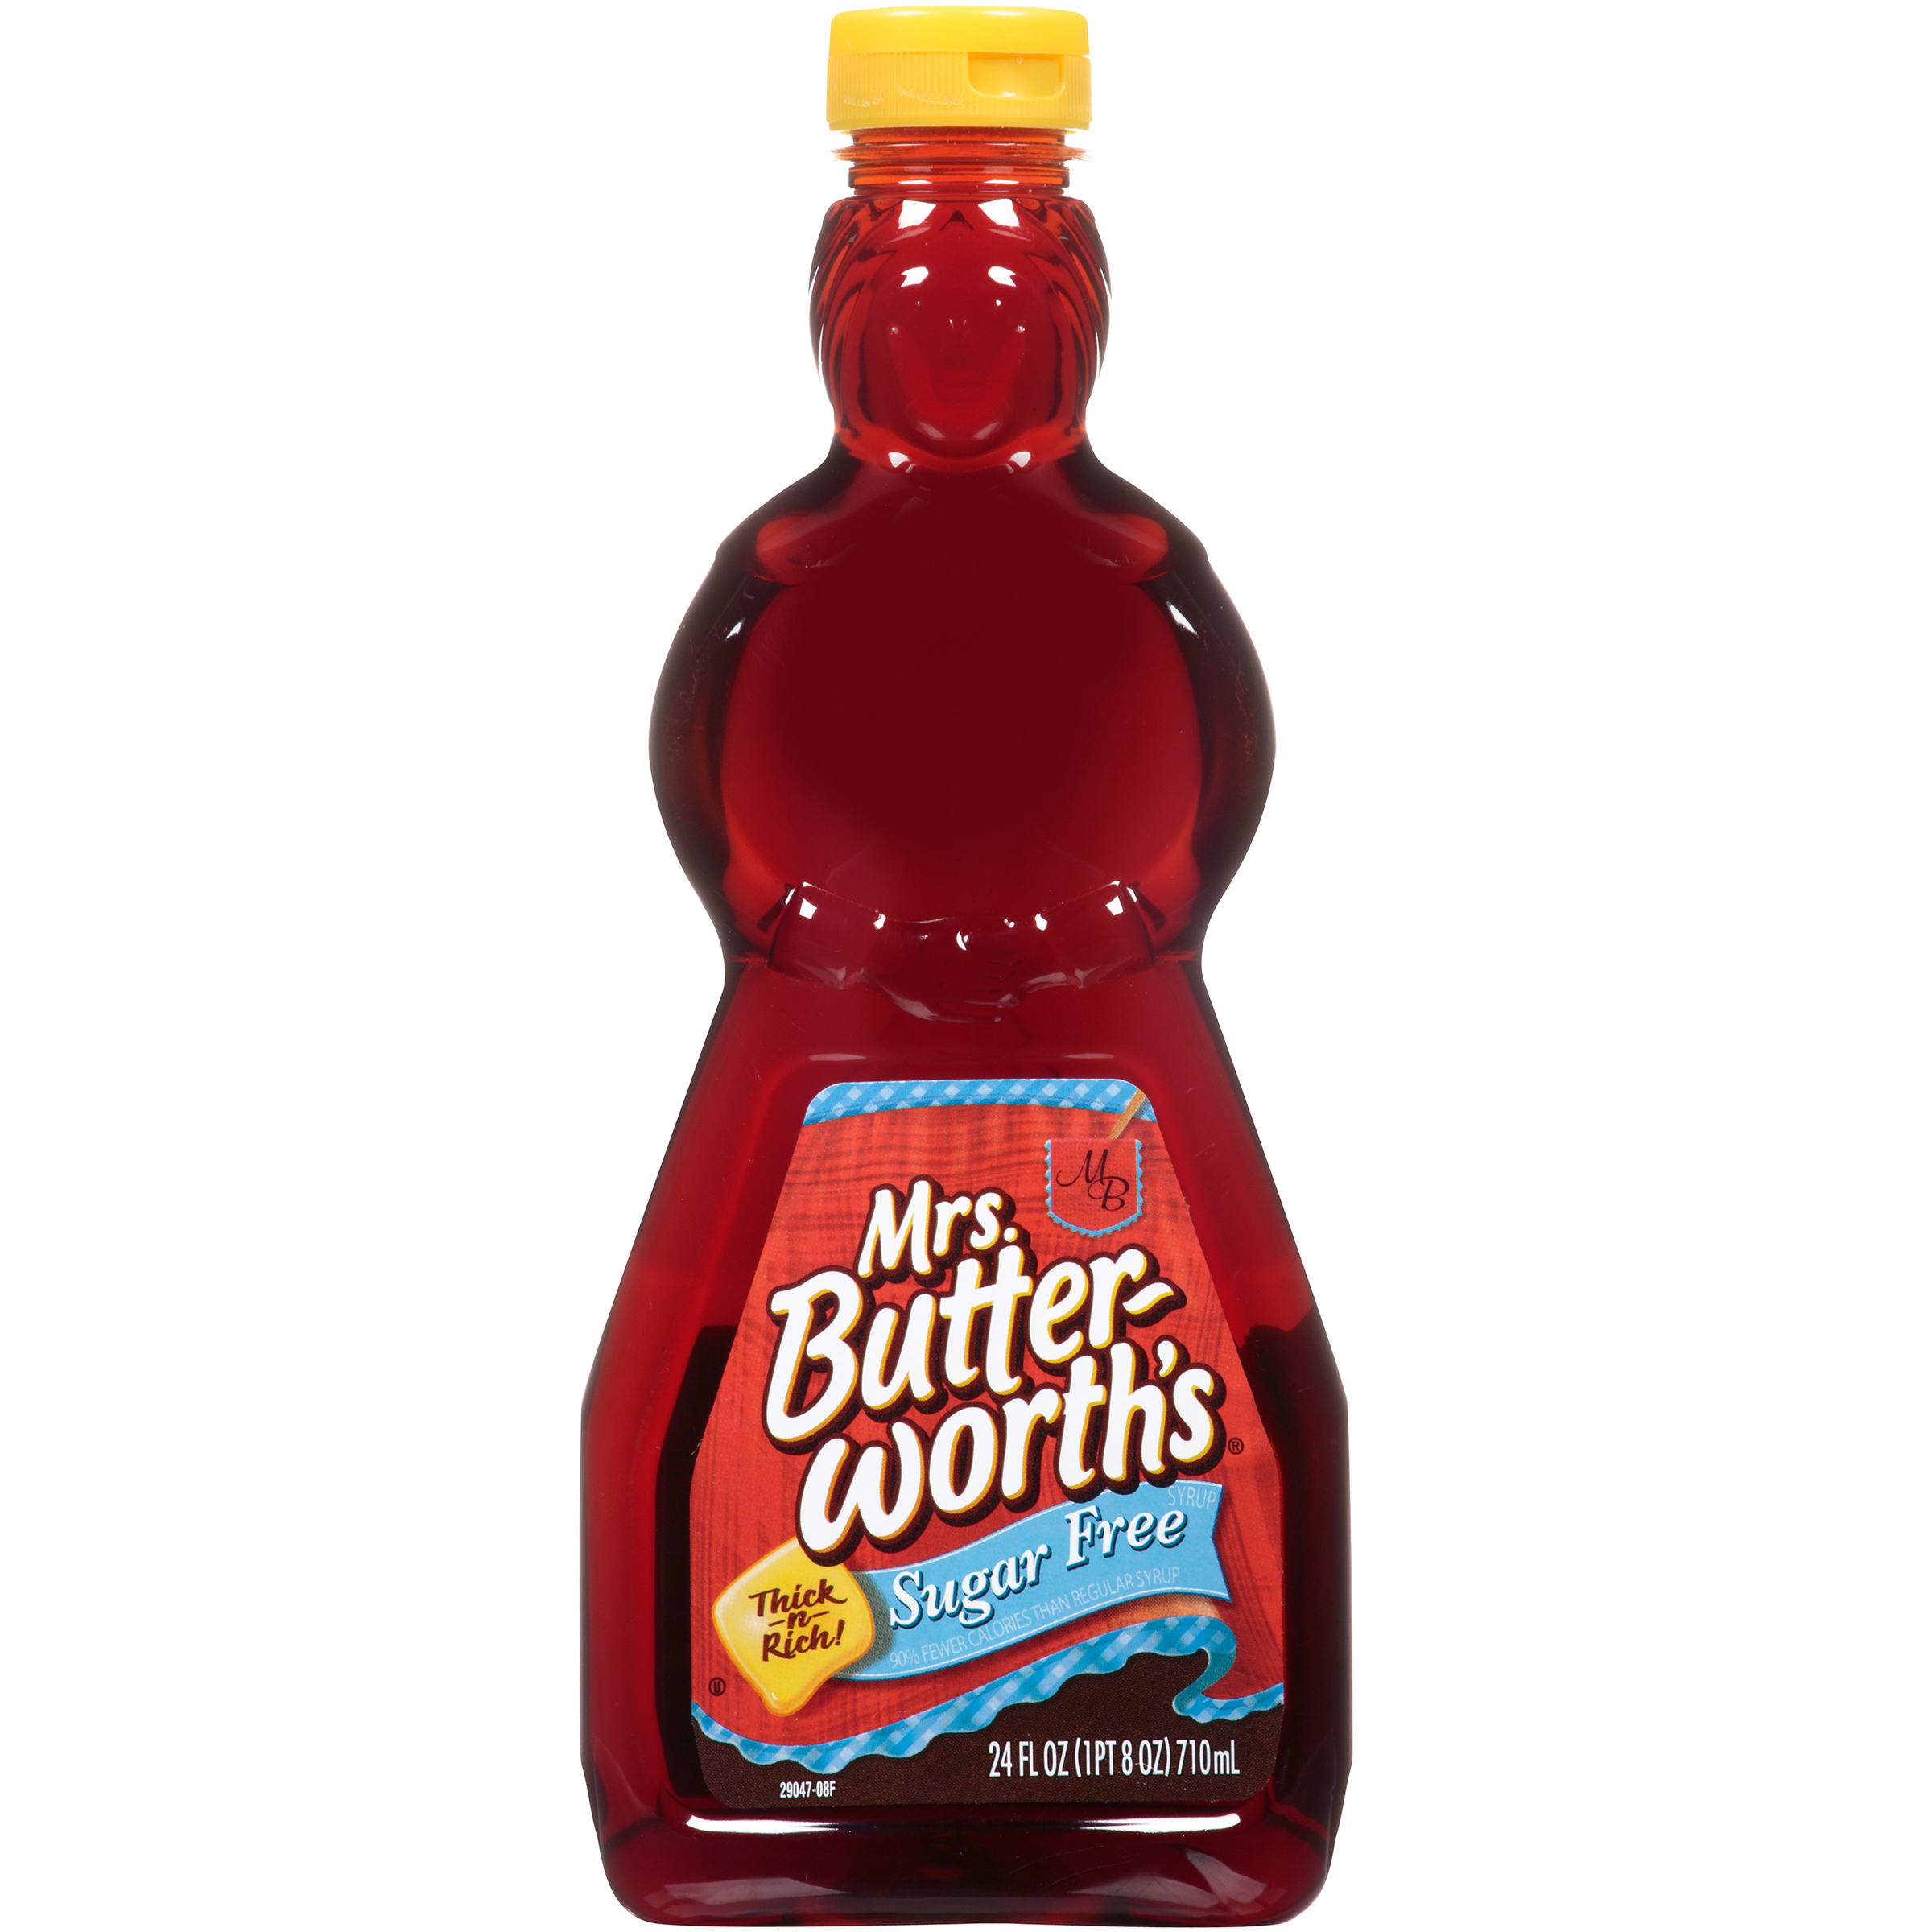 Mrs. Butterworth's�� Sugar Free Syrup 24 fl. oz. Bottle